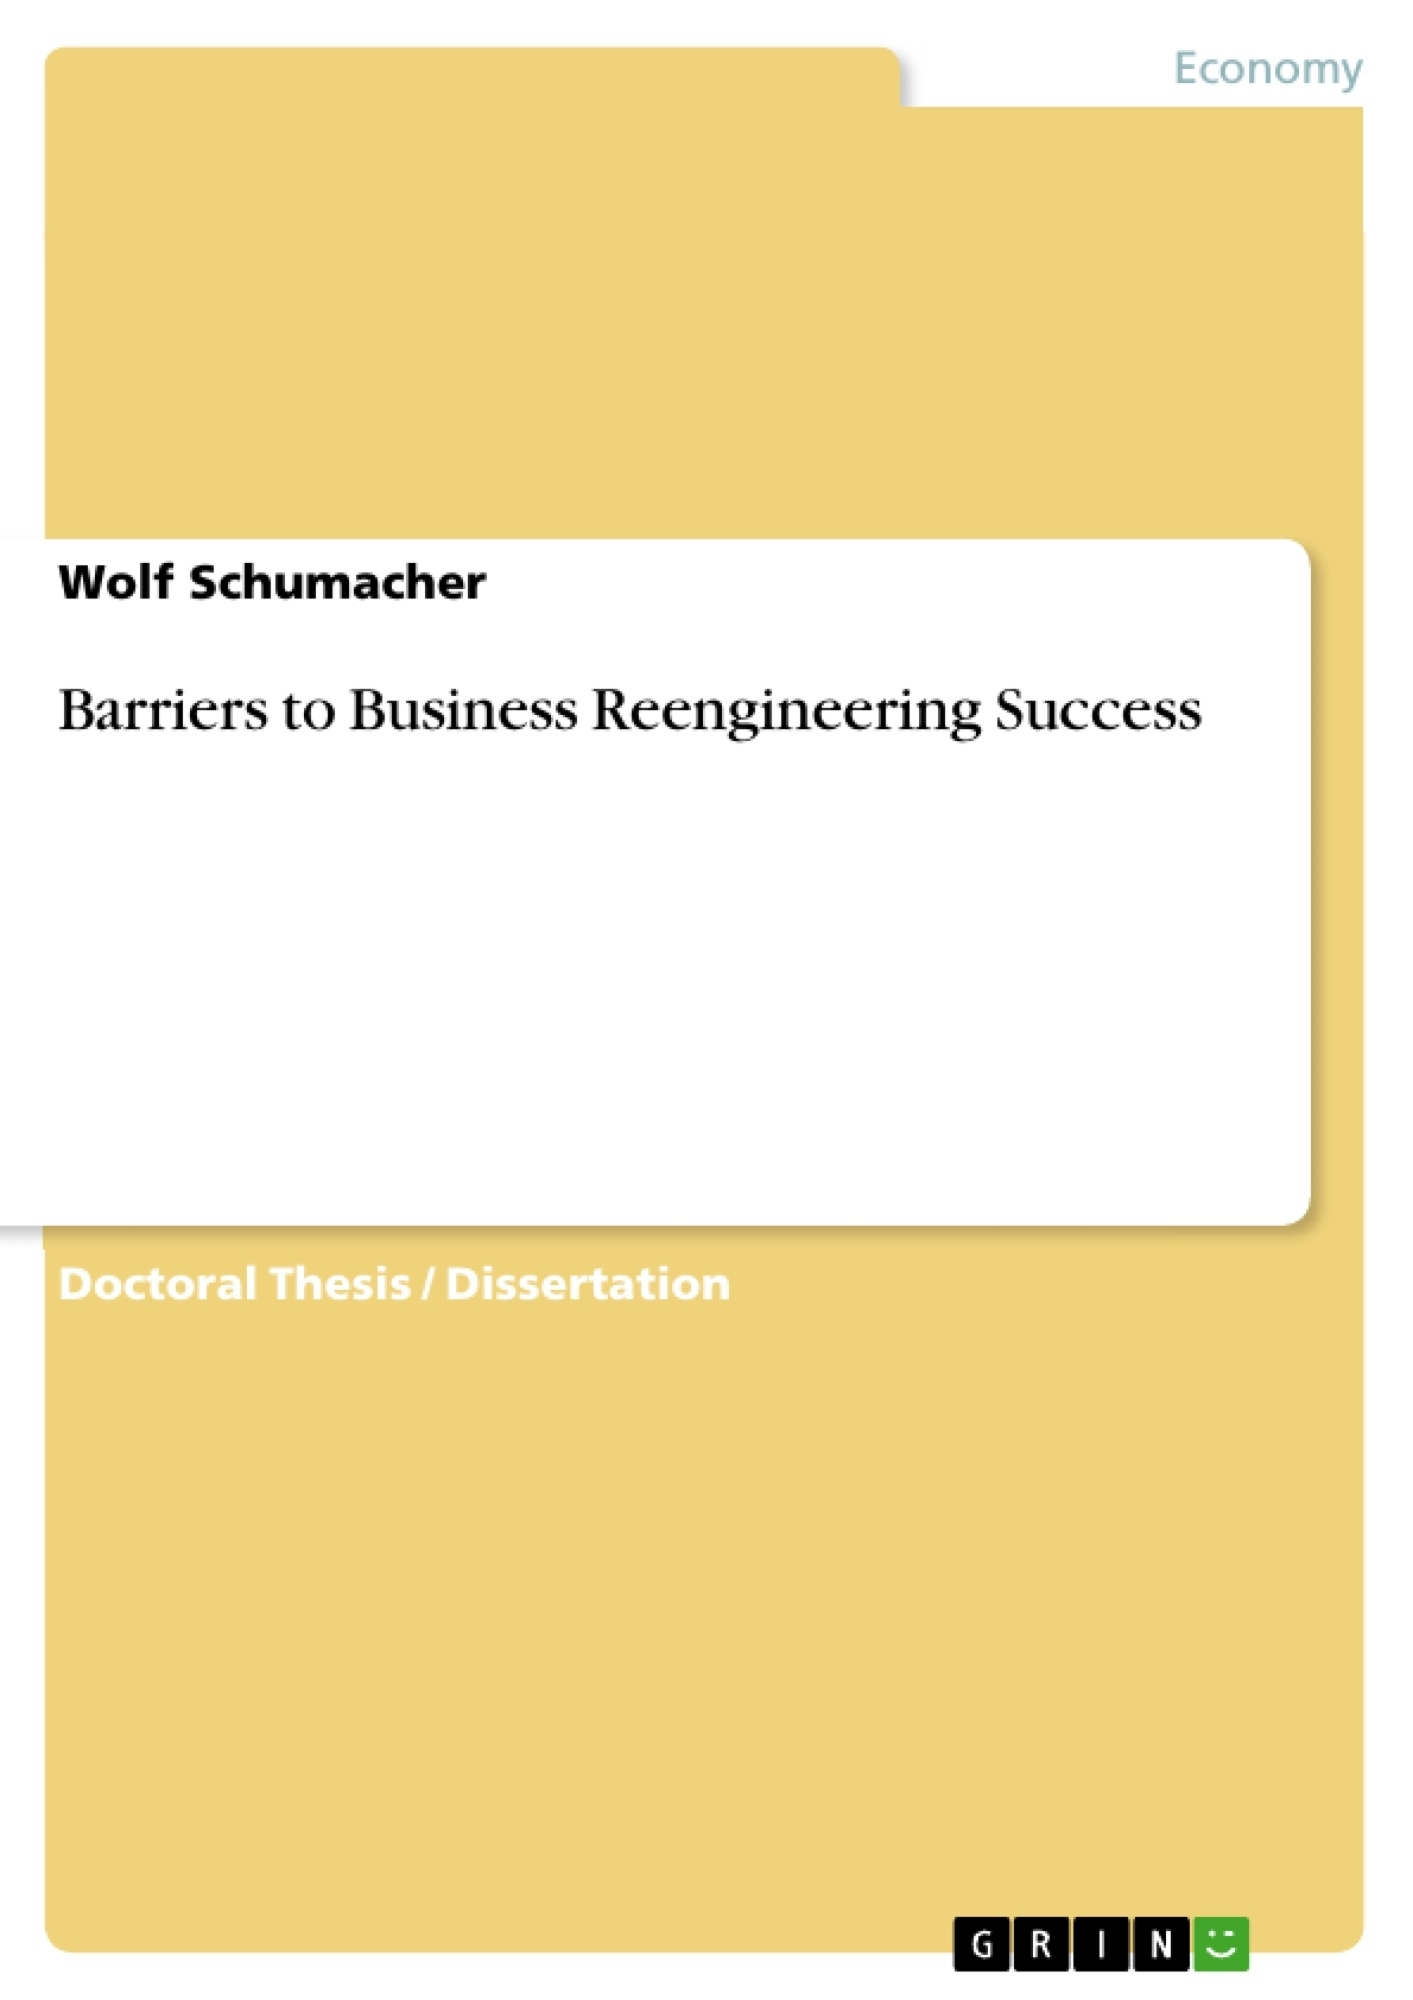 Title: Barriers to Business Reengineering Success